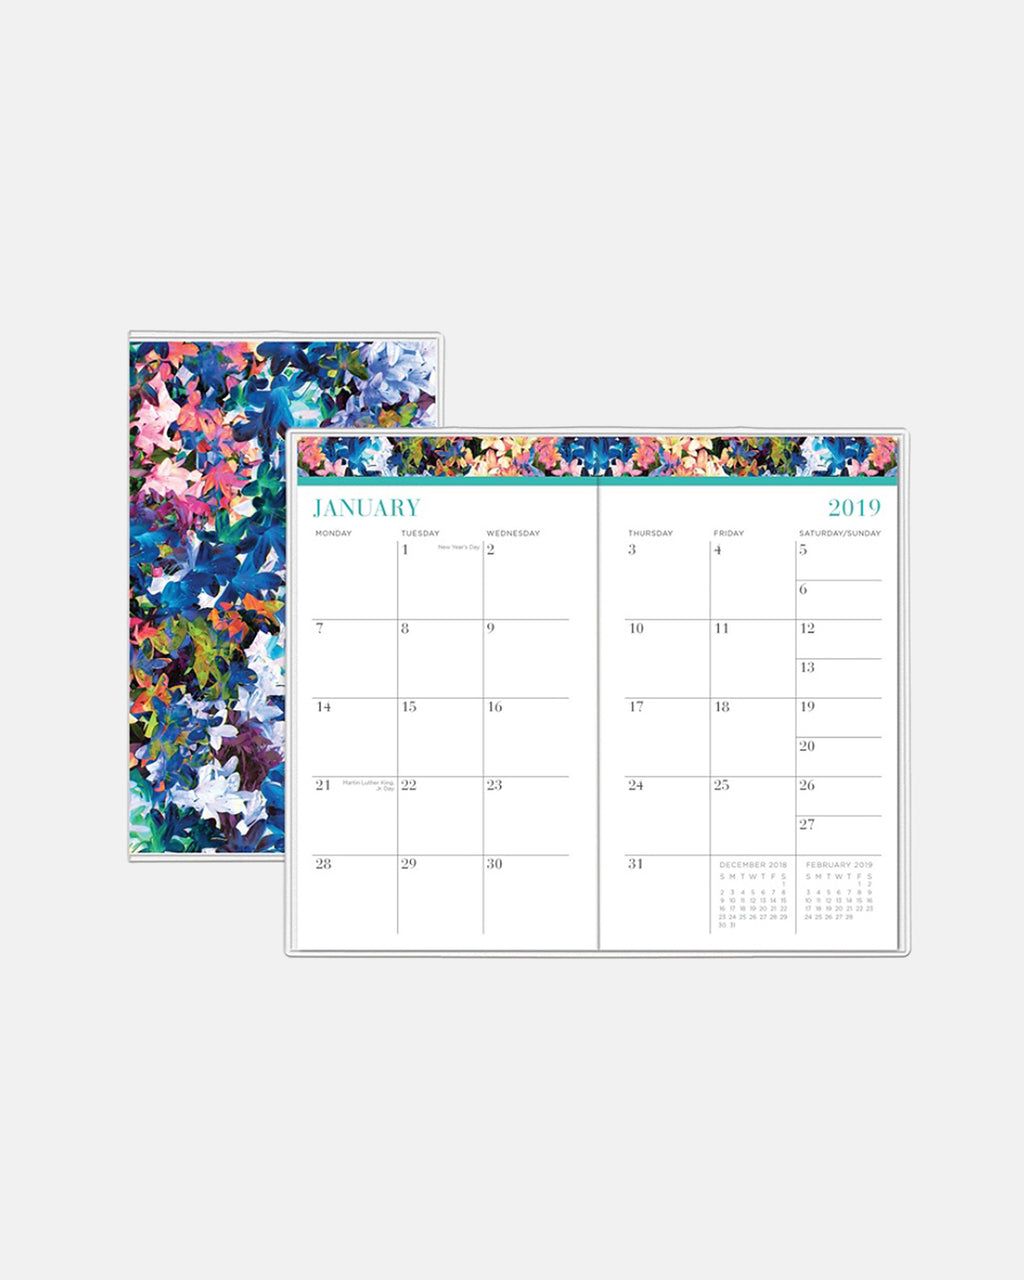 "PP10025 - Tie-Dye Flowers 2019 Weekly And Monthly Planner - 3 5/8"" X 6 1/8"" - accessories - stationary - 12 months, january to december 2 pages per month pages are wirebound with a polypropylene cover untimed appointments allow you to maintain a customized schedule"